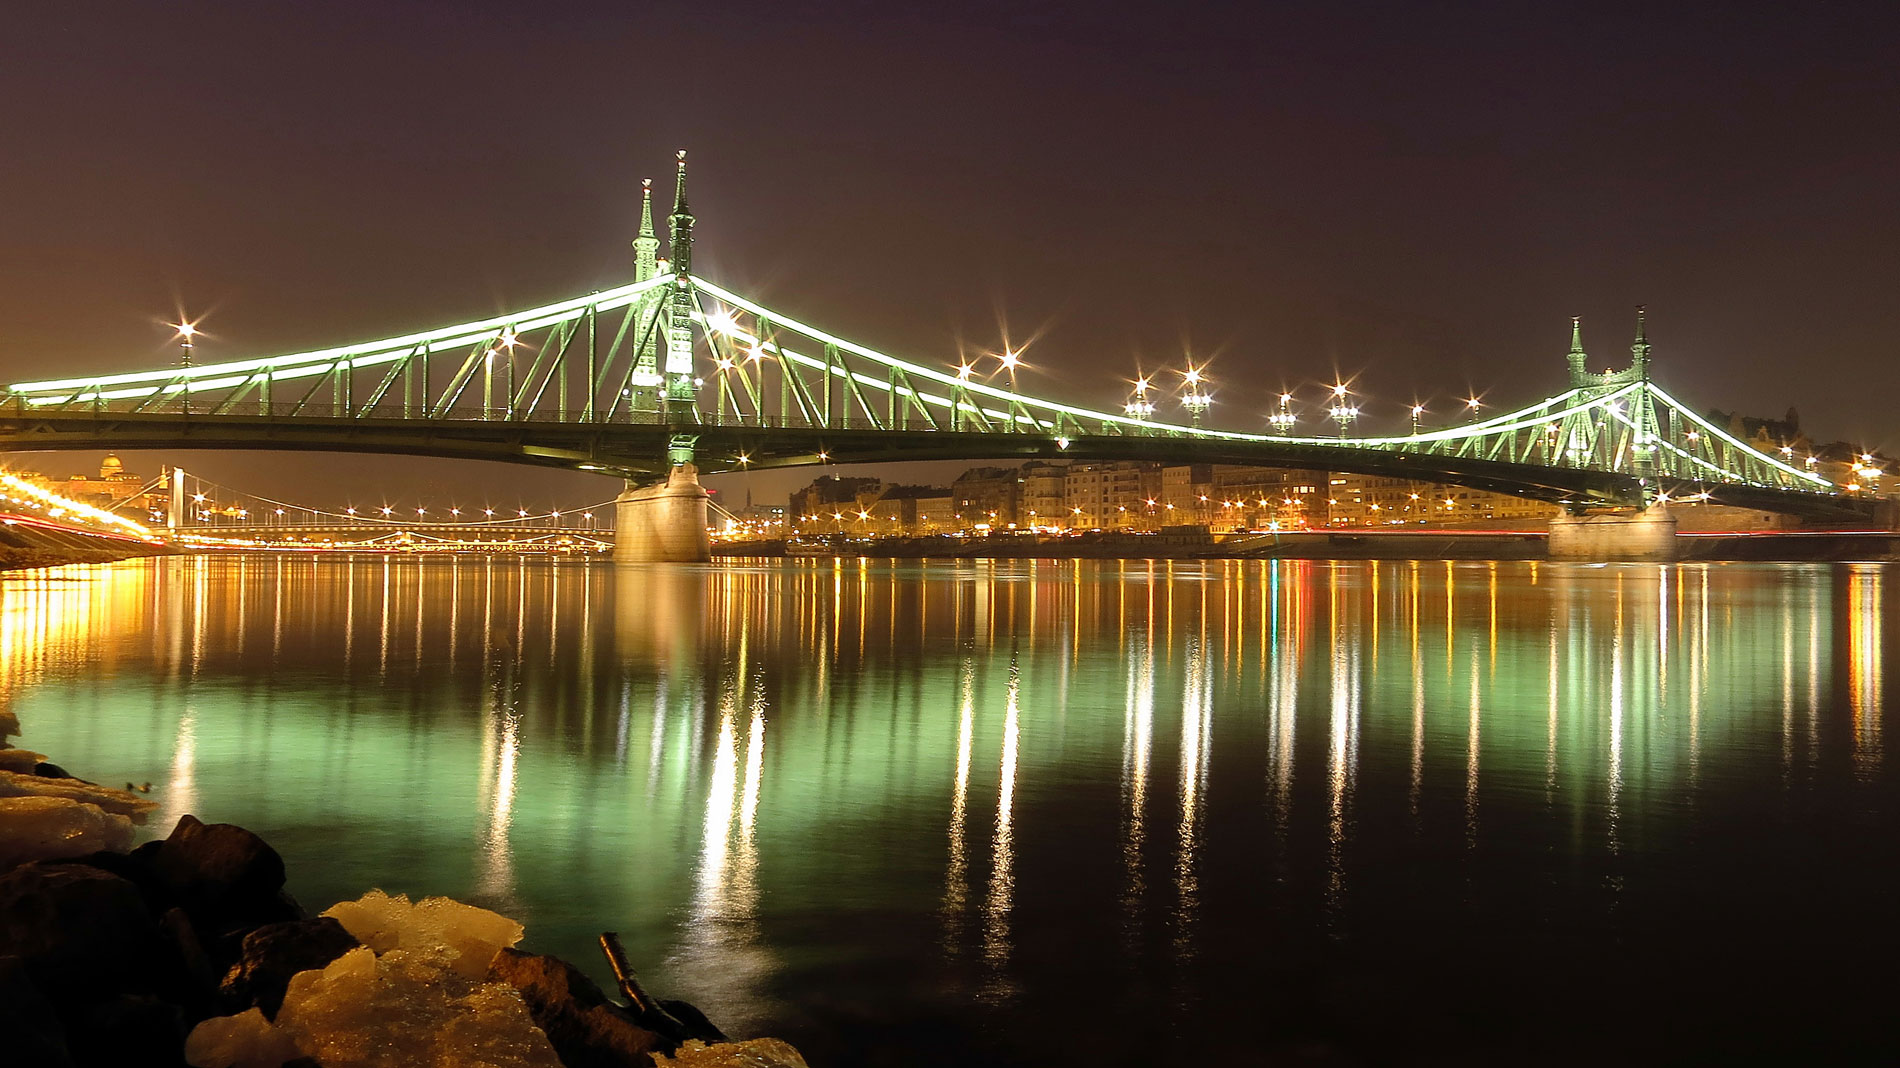 budapest_atthary_photography_bridge_37